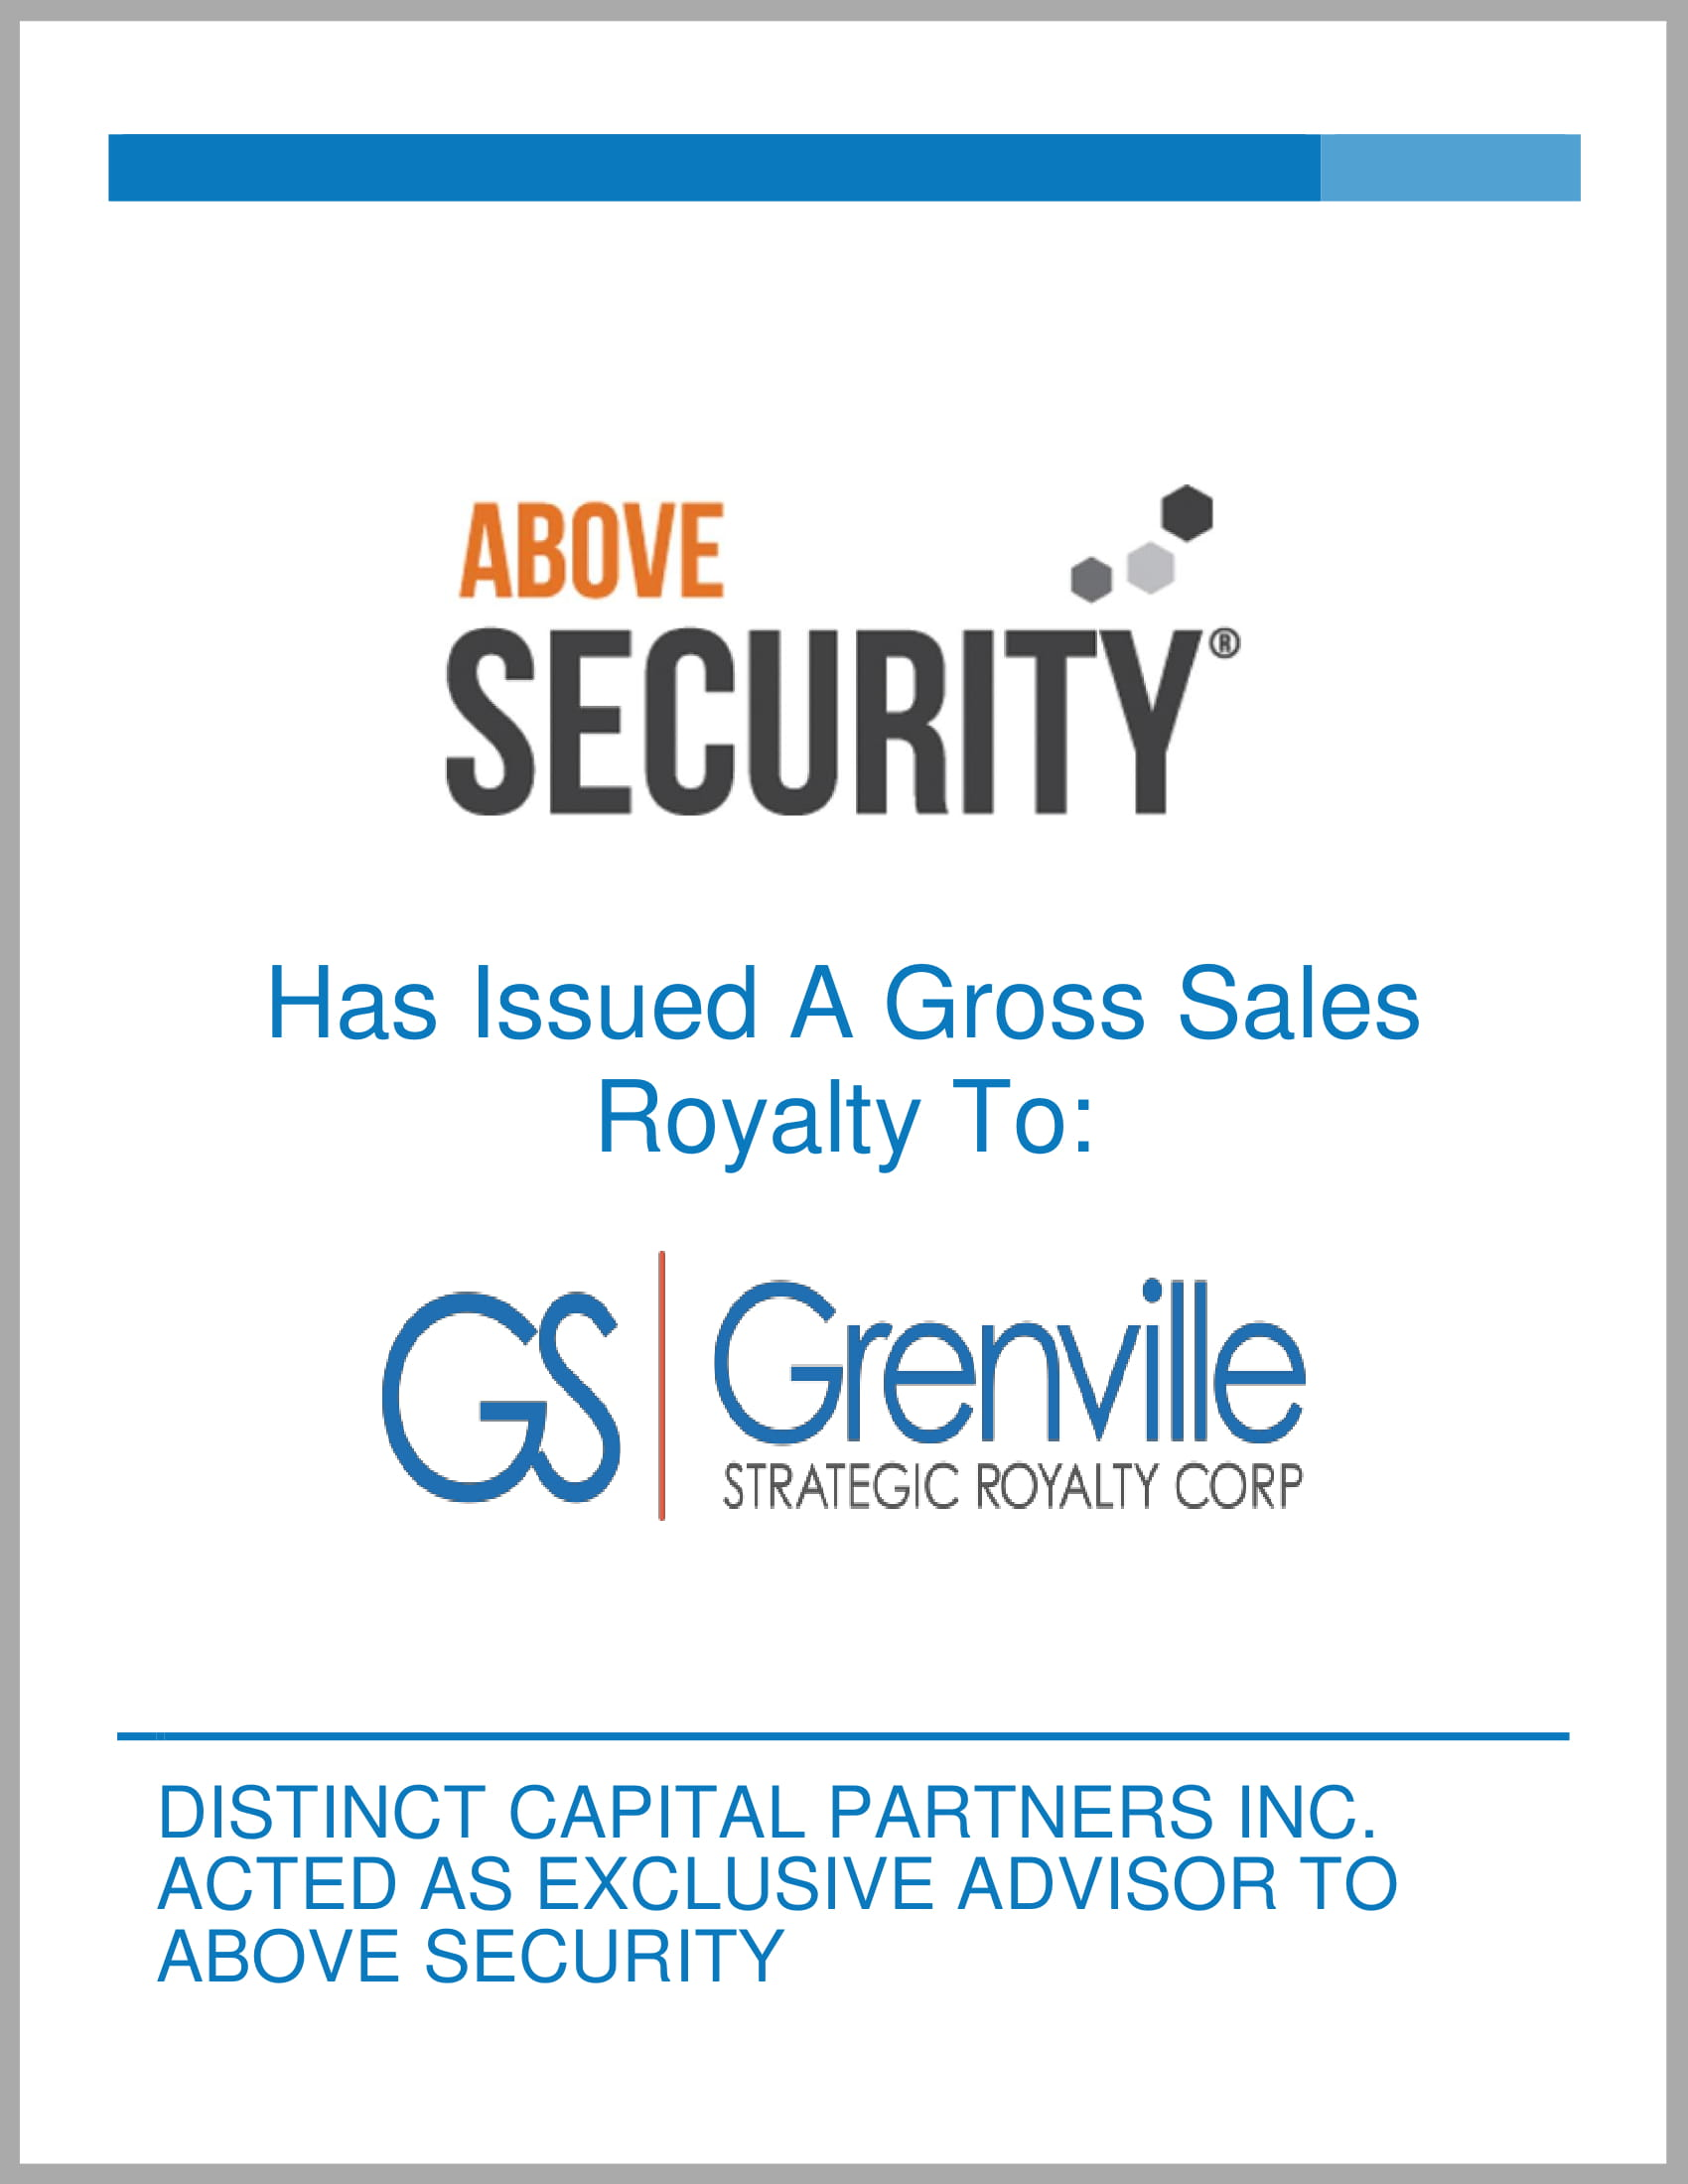 Above security-1.jpg